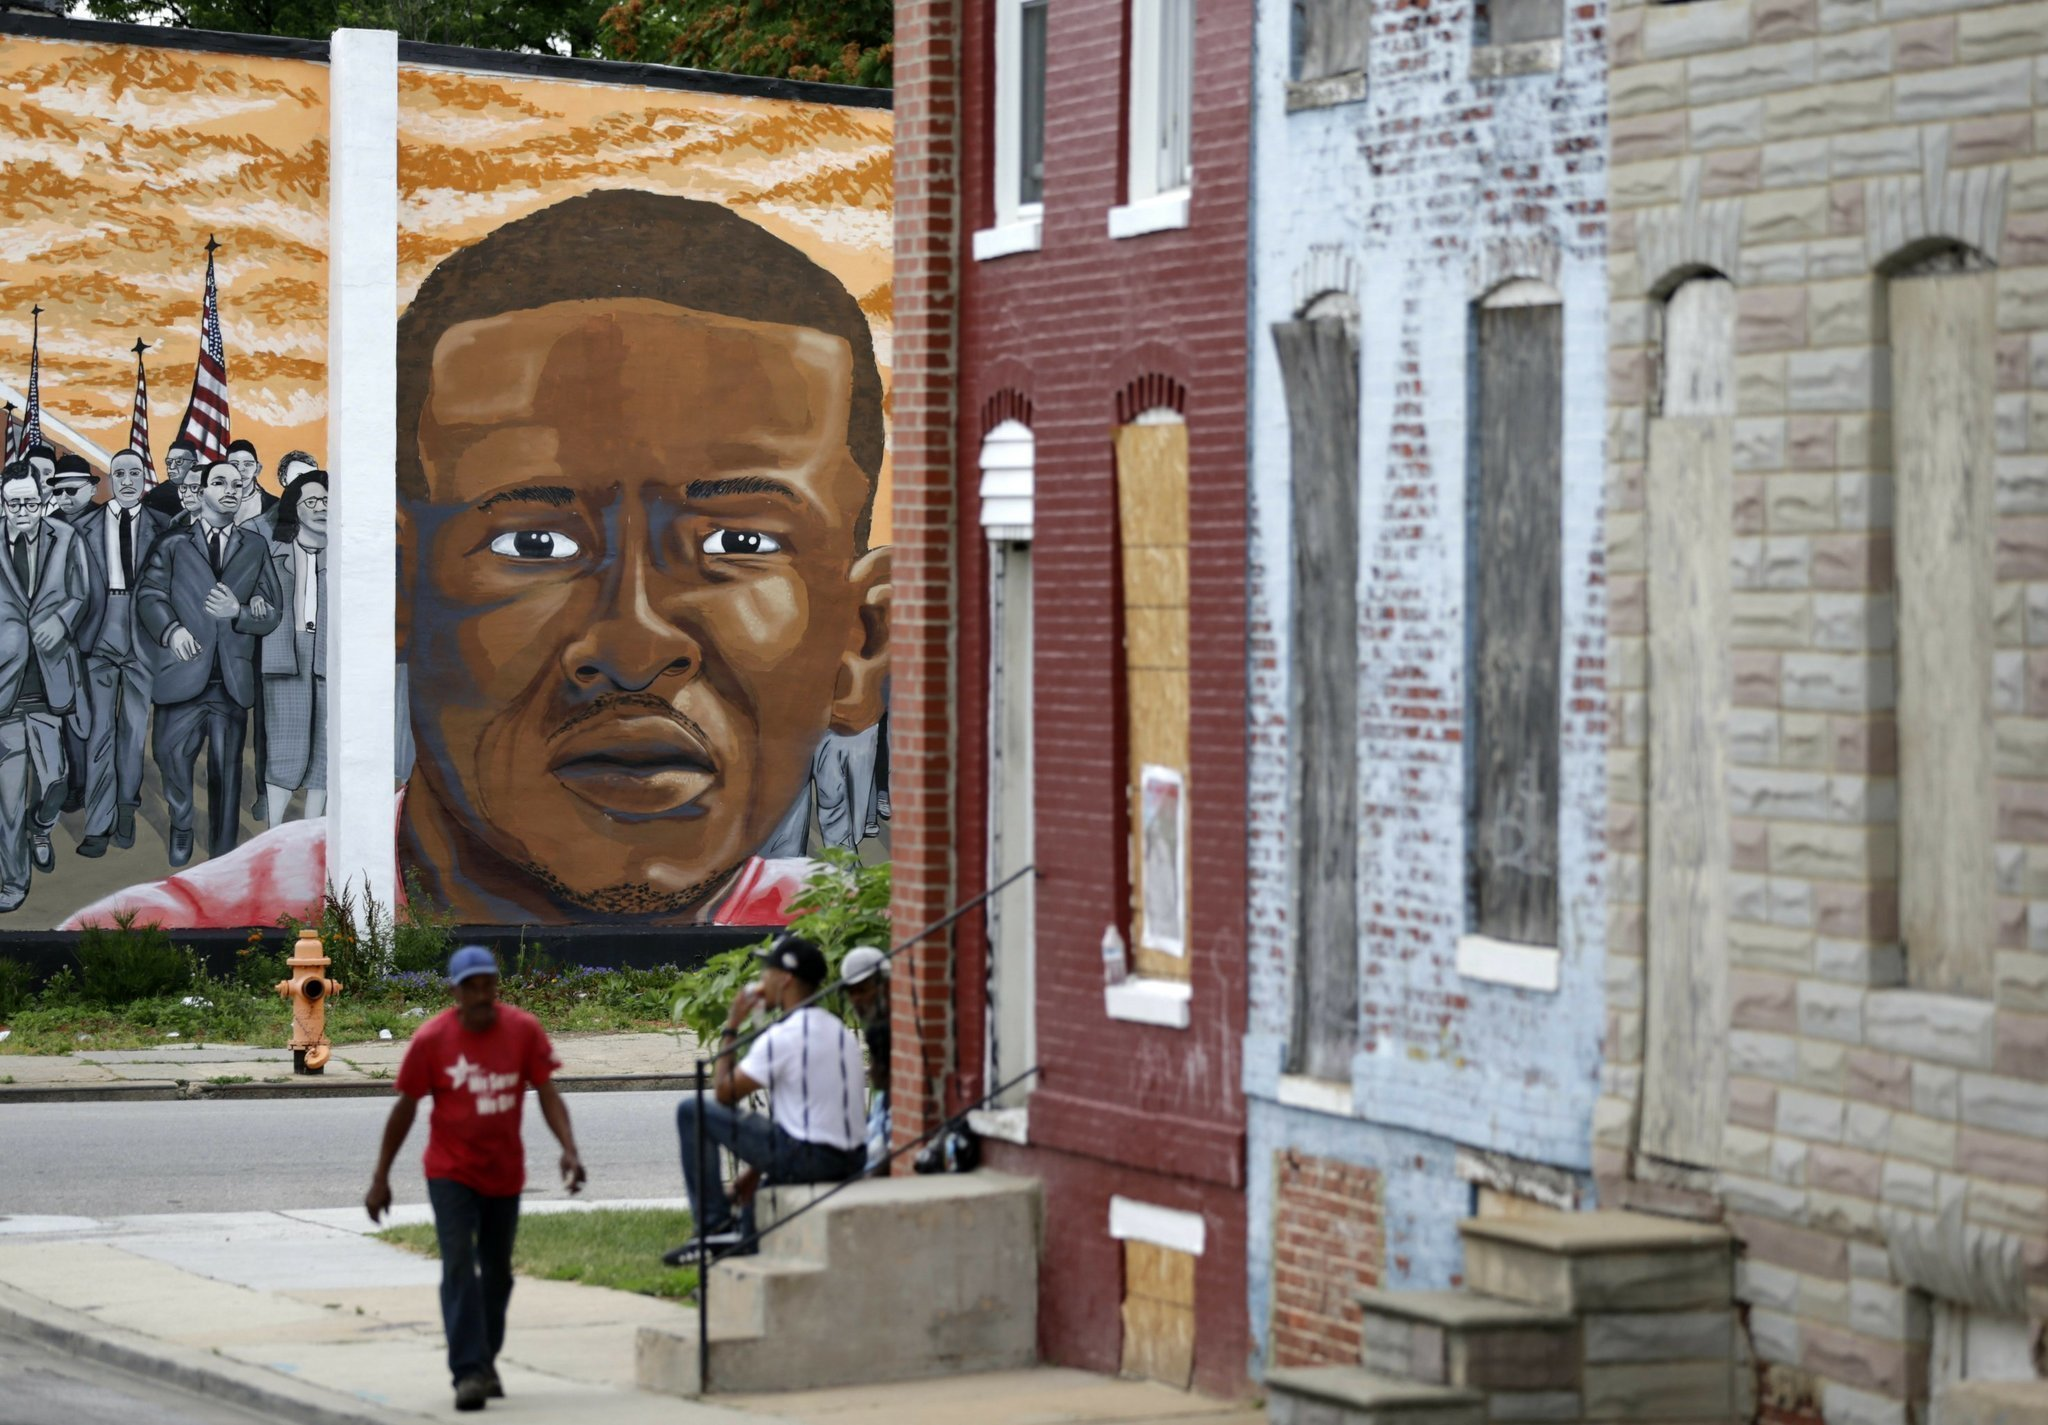 #RIP Lor Scoota, Baltimore rapper who tried to stop violence - The San Diego Union-Tribune